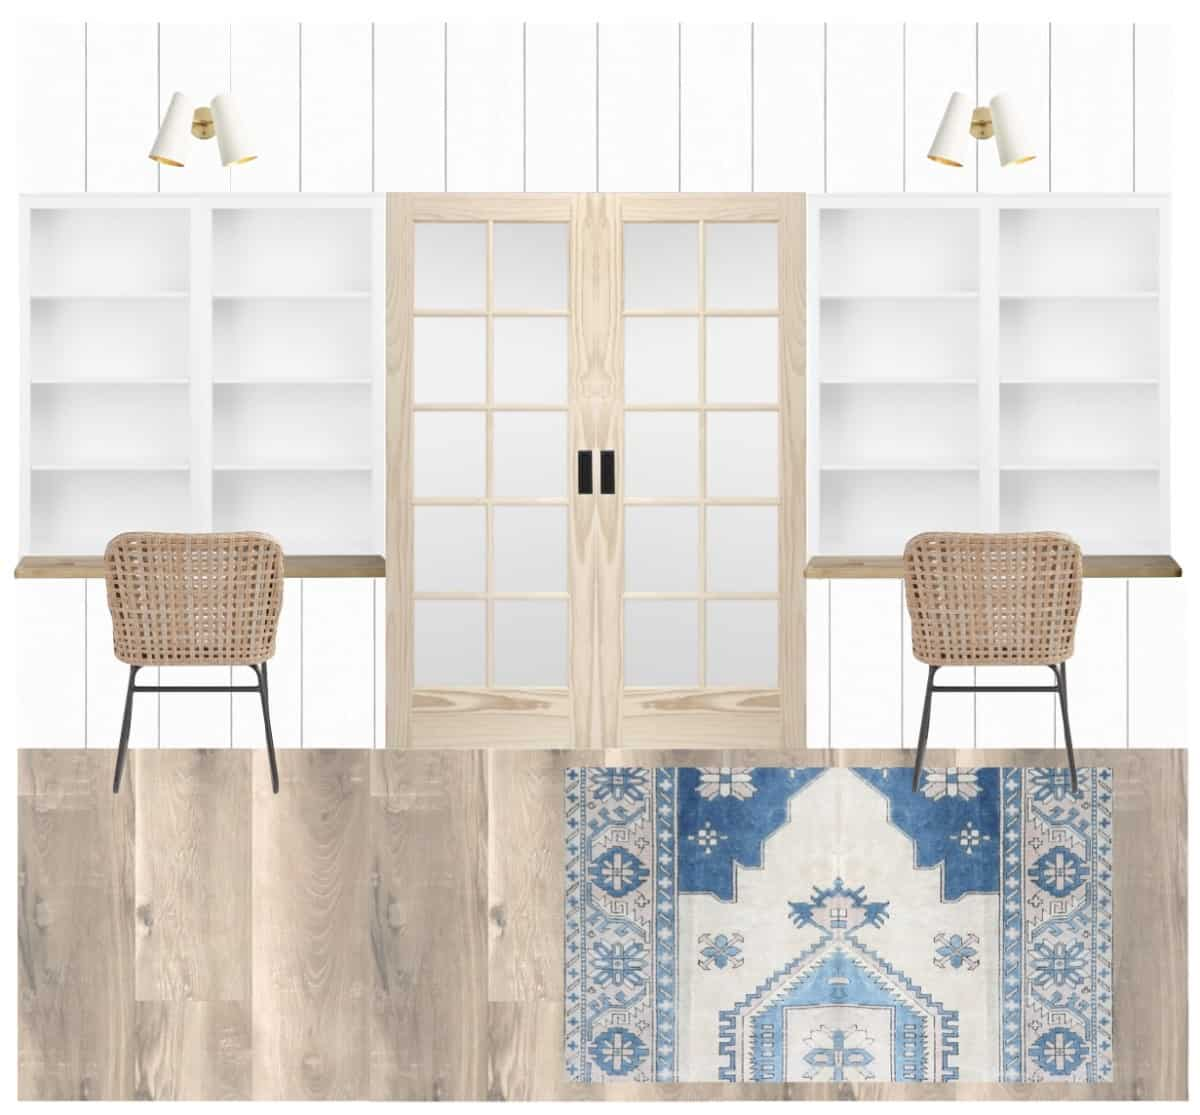 Designing our coastal inspired office with built-ins and desks for kids and adults. #office #kidsdesks #coastaldeco #coastalhome #builtins #builtindesks